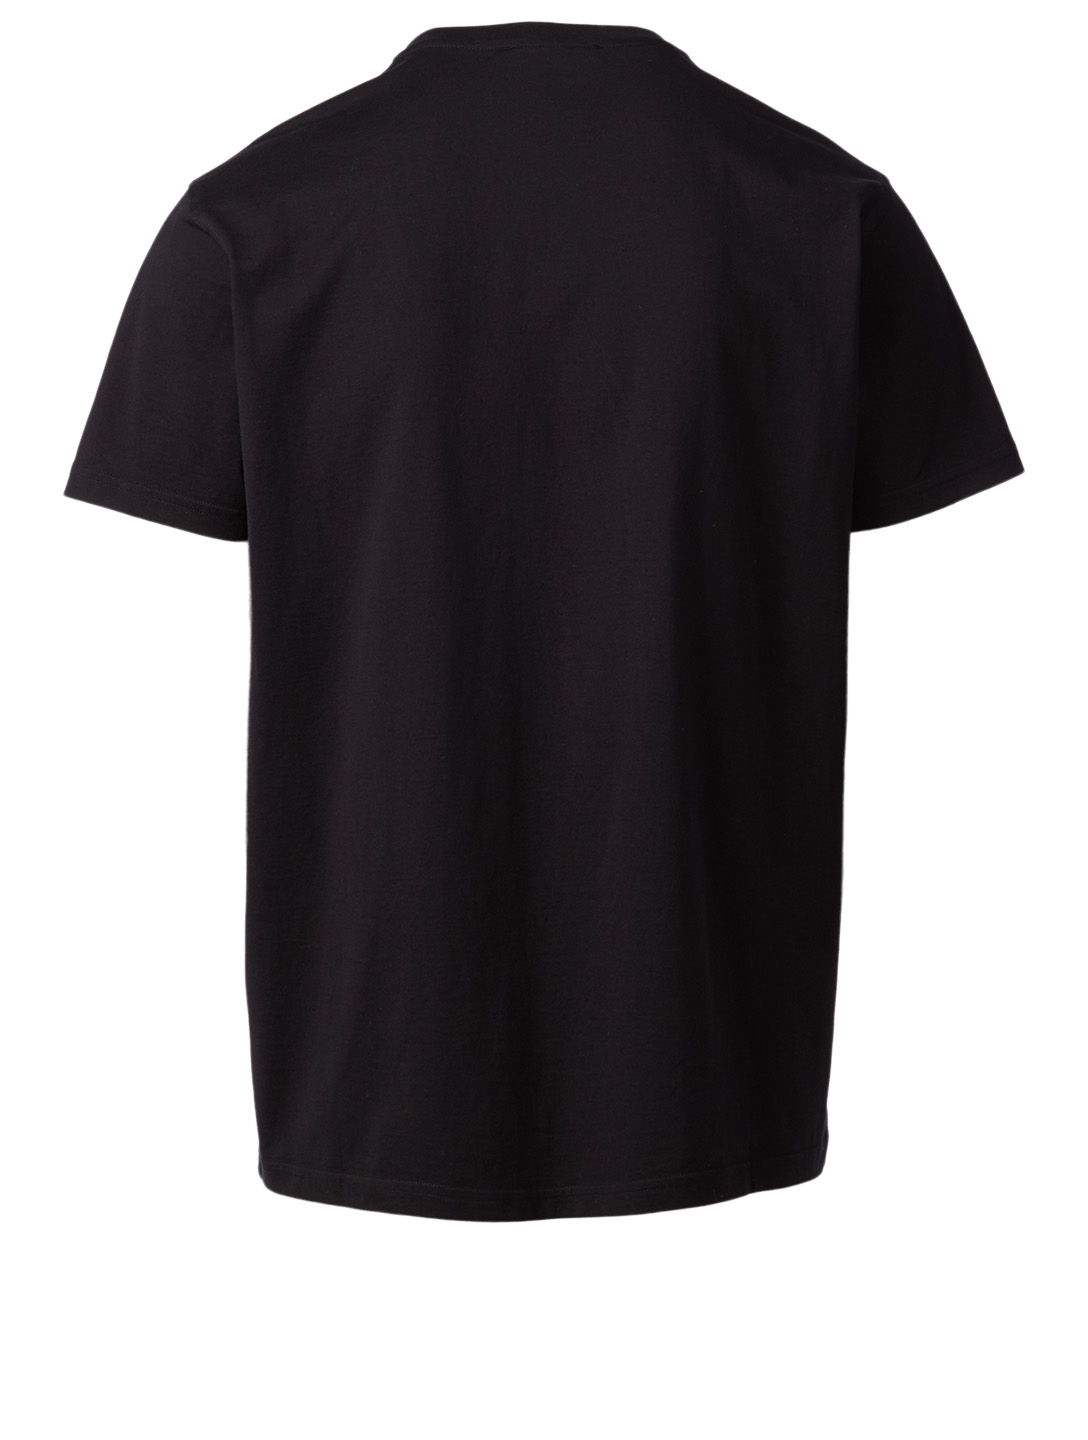 GIVENCHY Cotton T-Shirt With Tufted Logo Men's Black